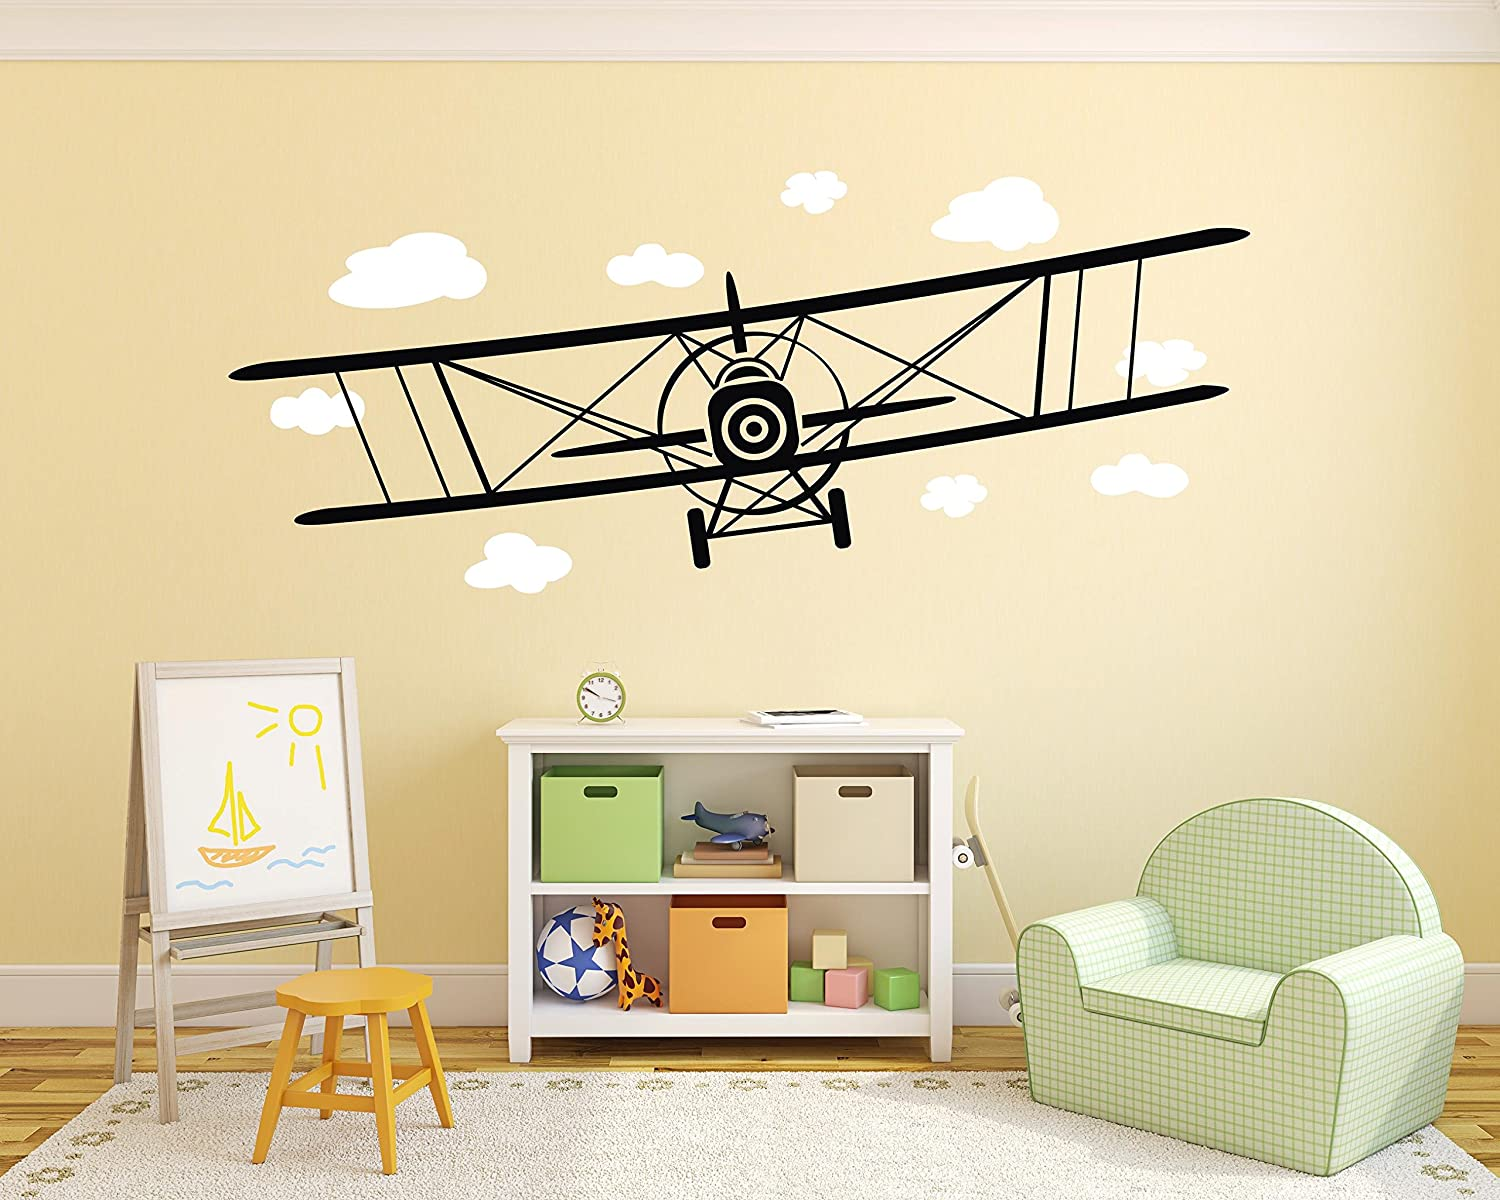 Amazon.com: Big Airplane Wall Decal Biplane Wall Sticker Airplane ...